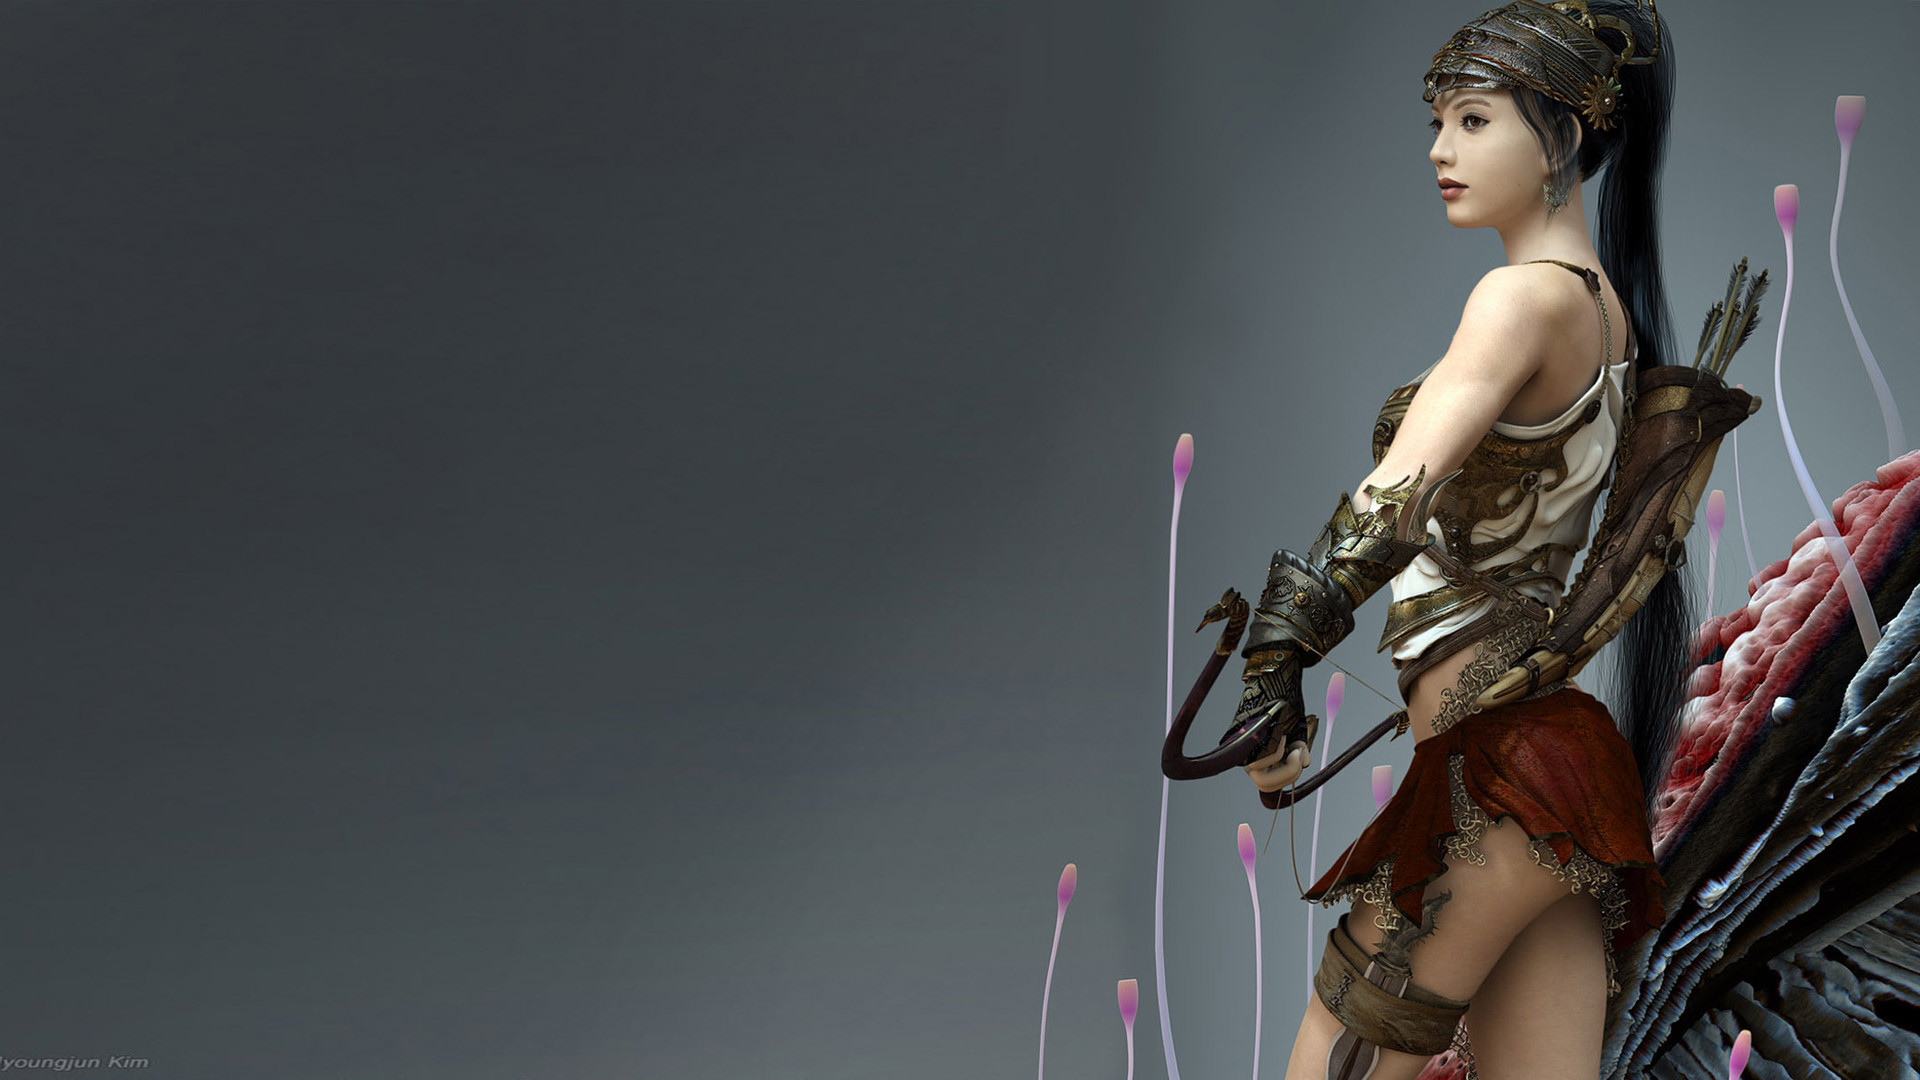 1920x1080 Fantasy Female Warrior wallpaper